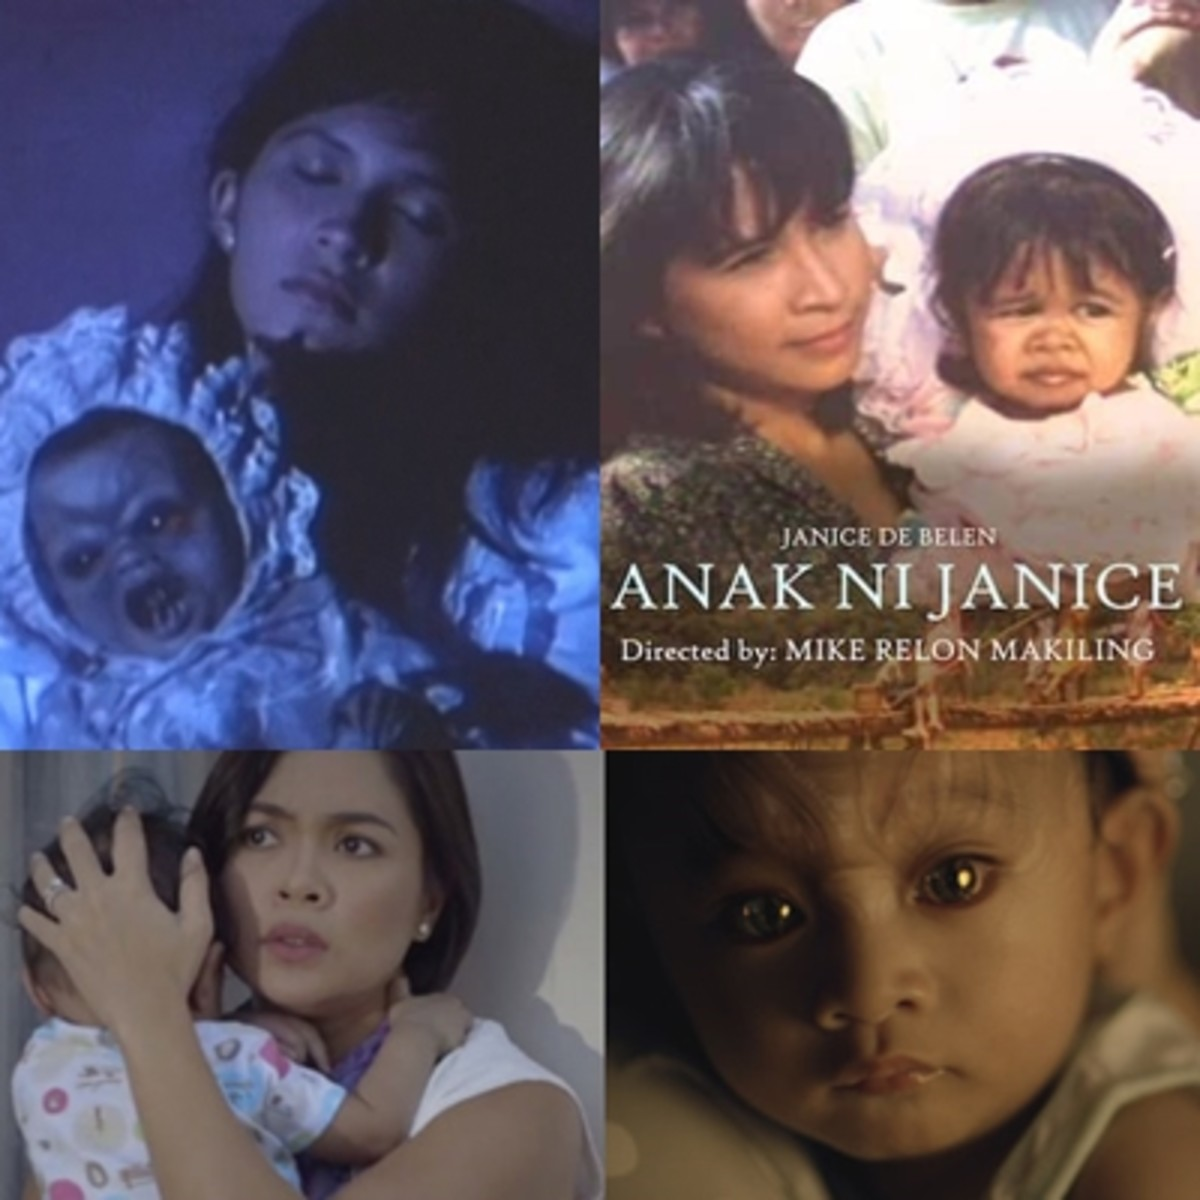 Famous Tiyanak in Filipino movies: Tiyanak 1988, followed by a parody comedy titled Anak ni Janice in 1991(The Child of Janice [de Belen], the same actress playing in the original), and the subsequent reboot Tiyanak 2014 that starred Judy Ann Santos.